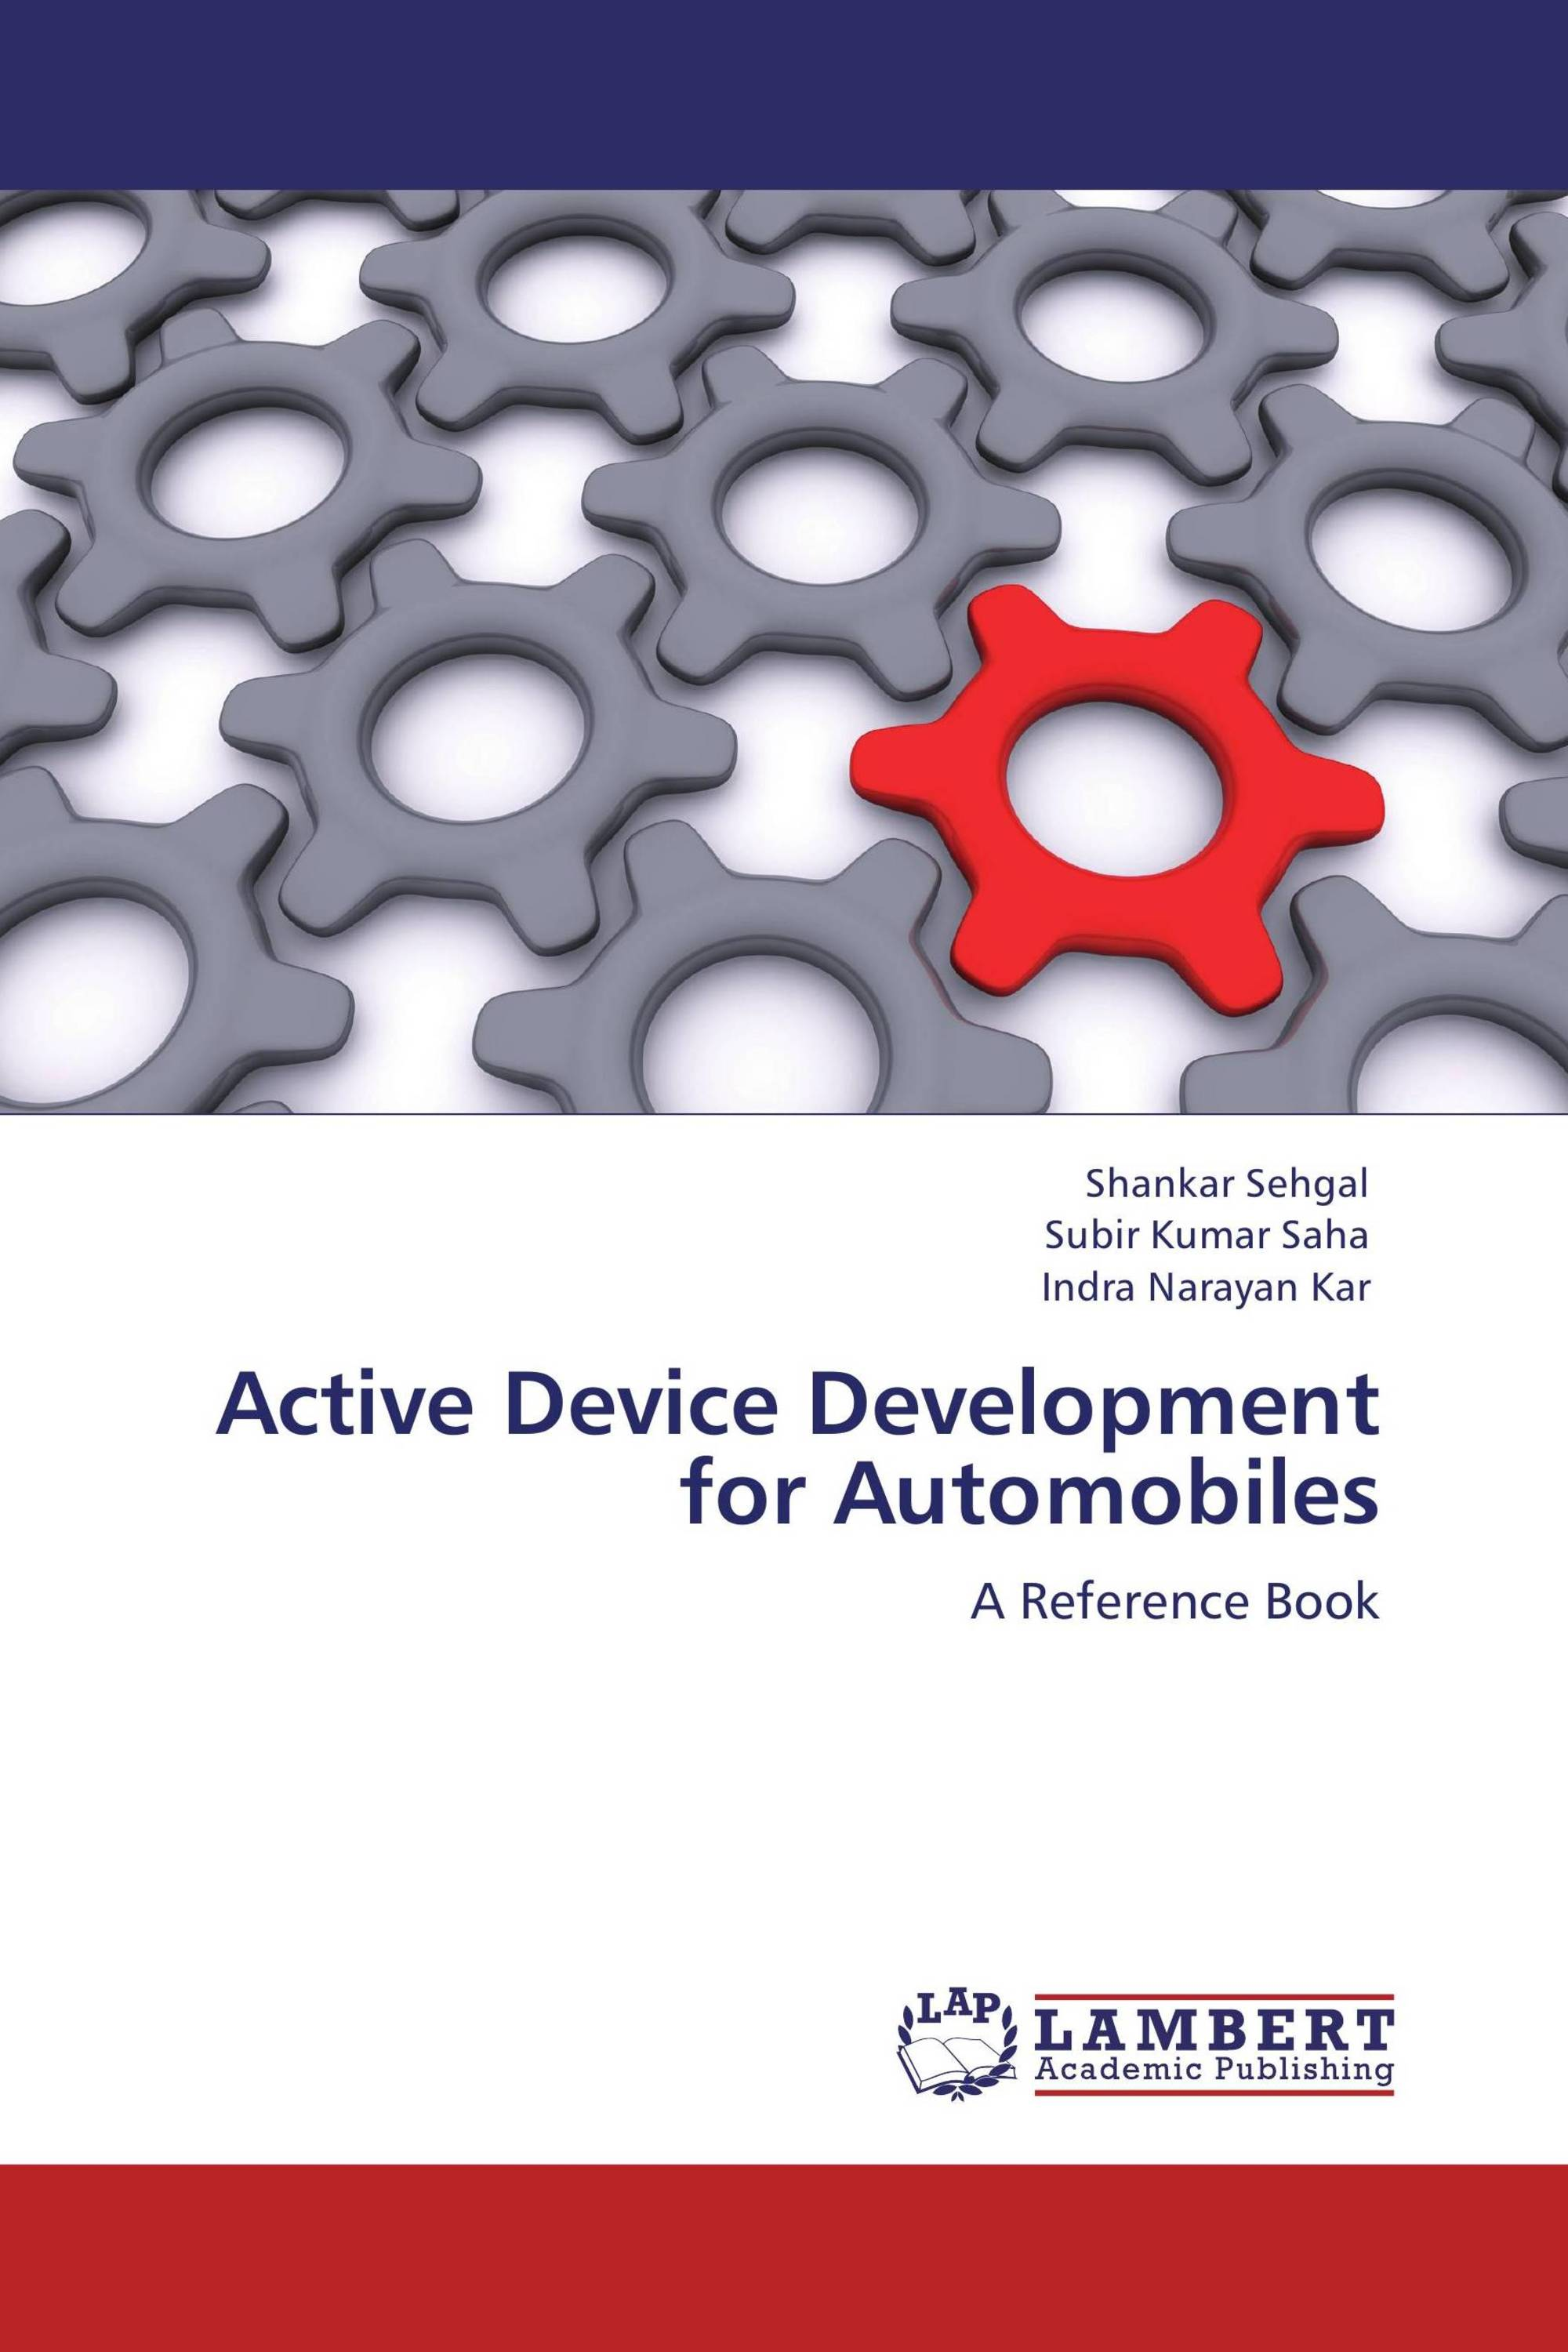 Active Device Development for Automobiles